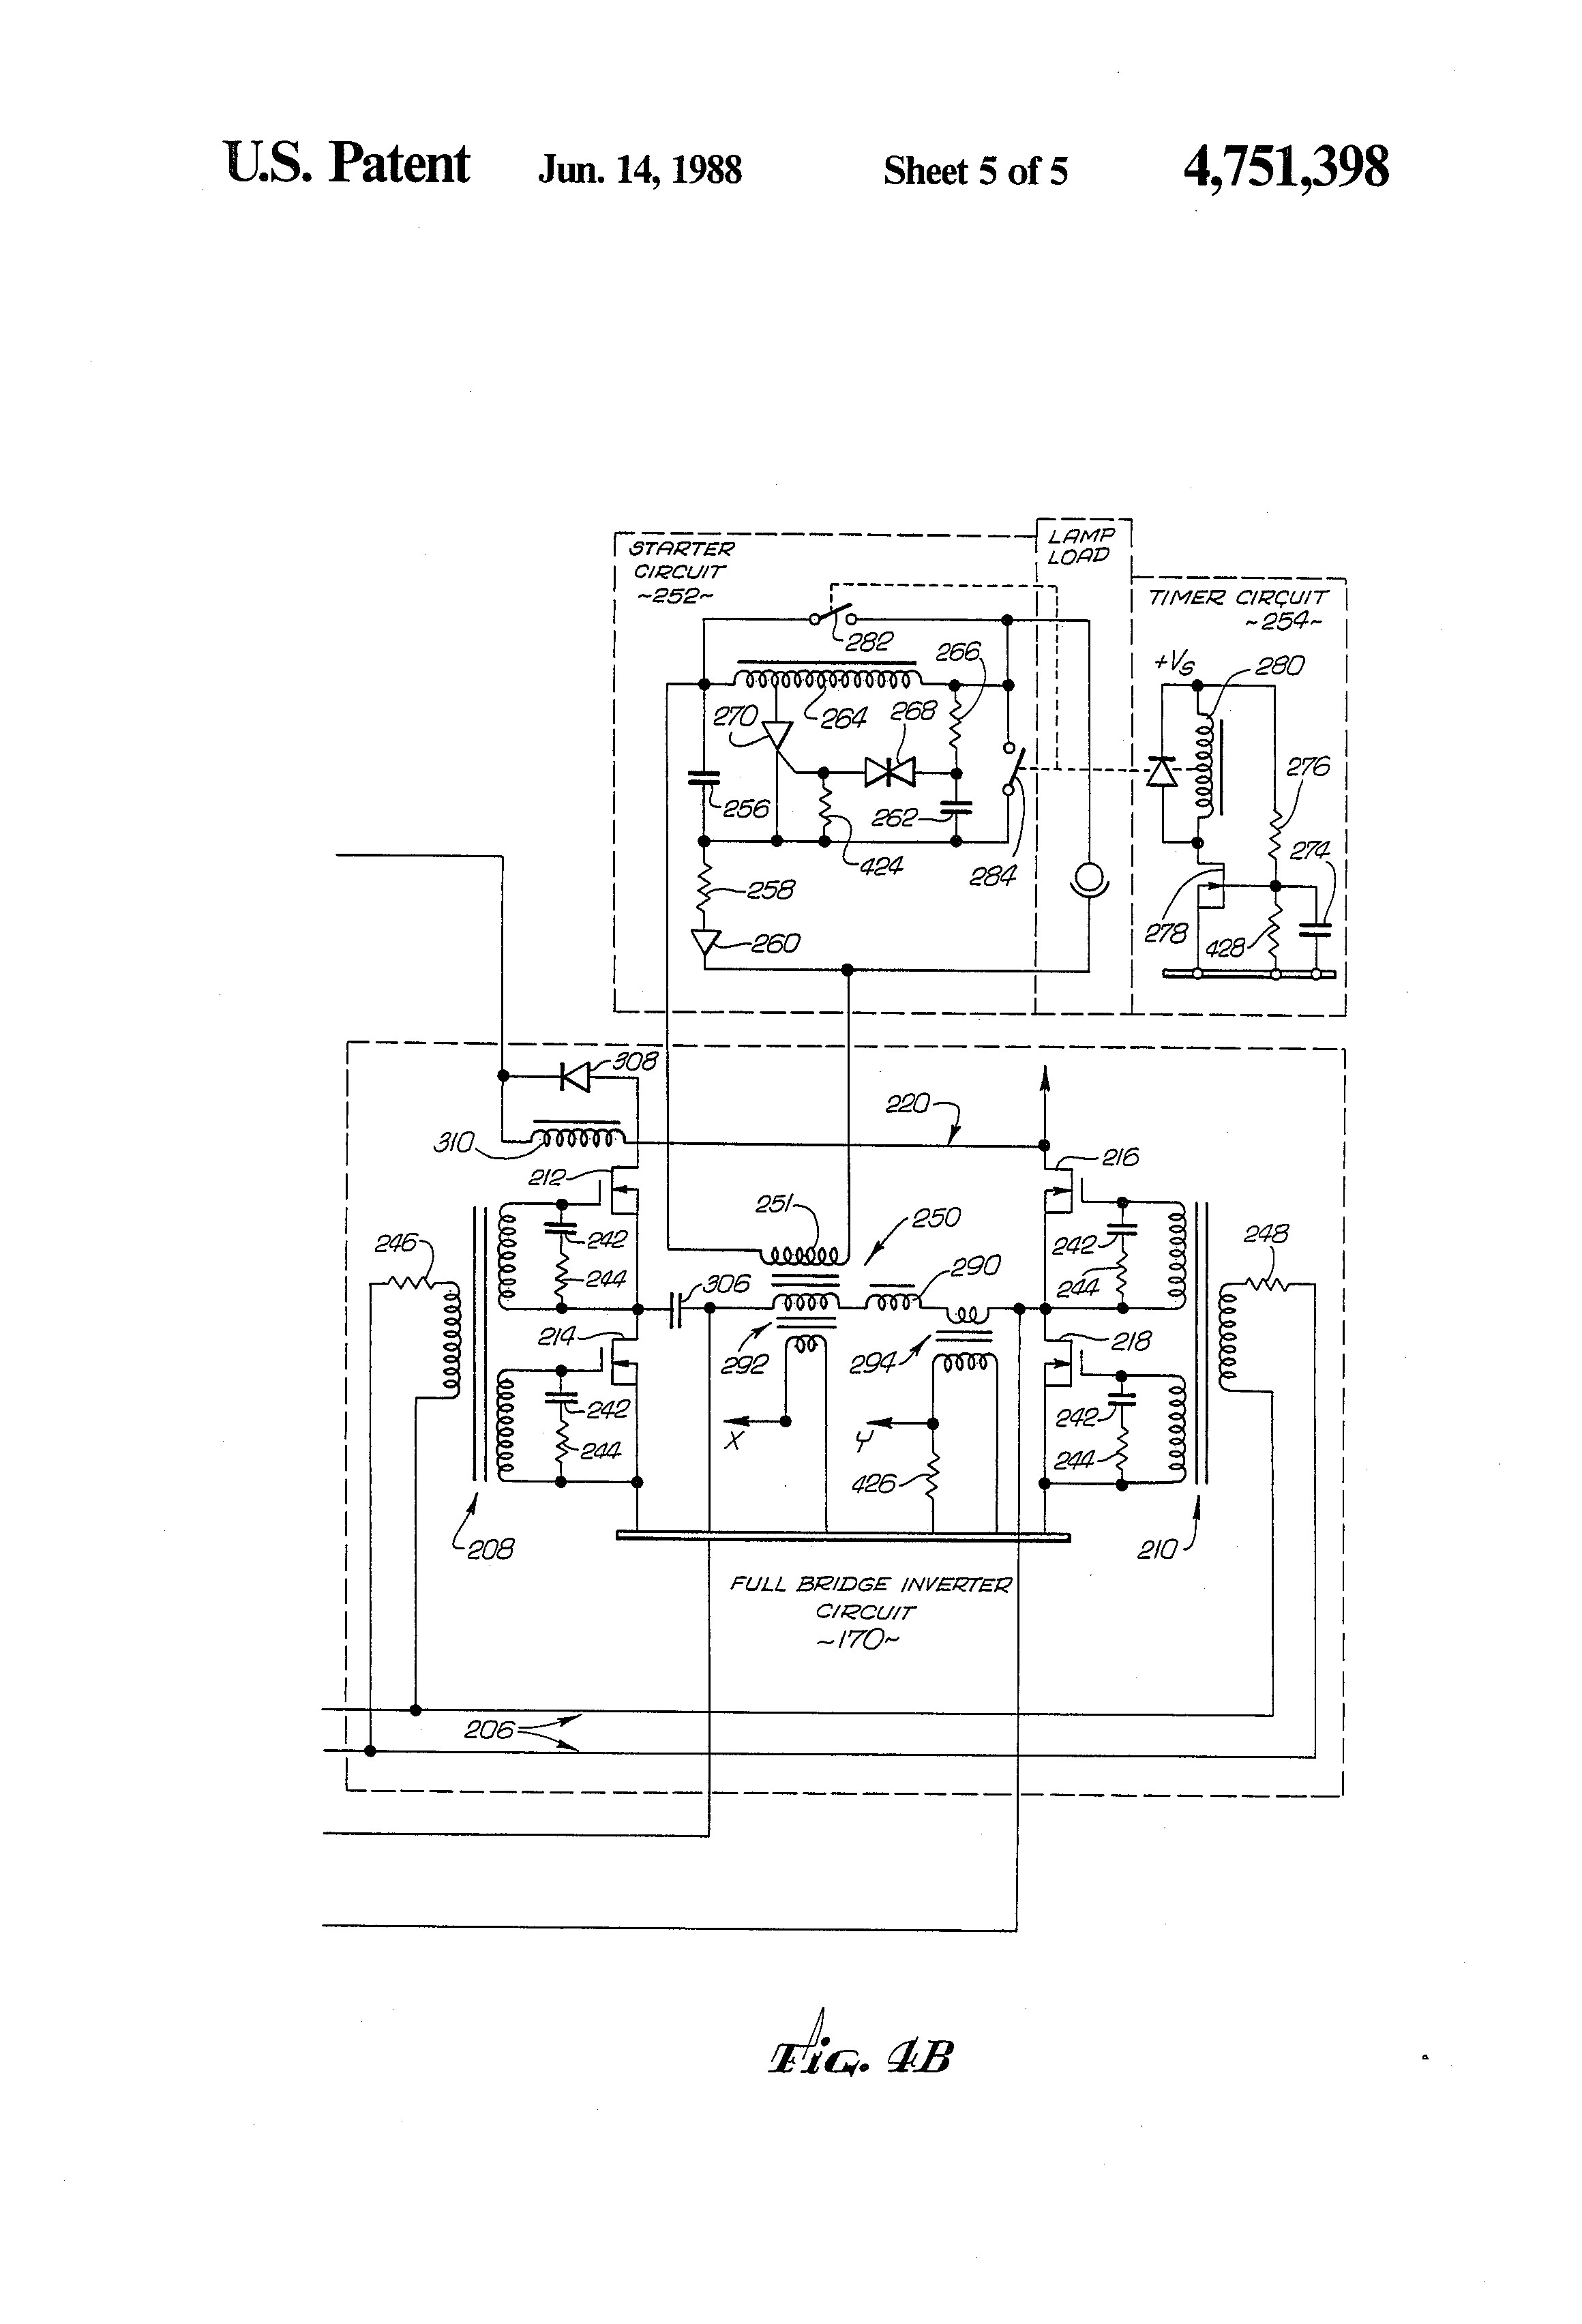 get bodine b100 wiring diagram download fms audio wiring diagram mct006g2 b